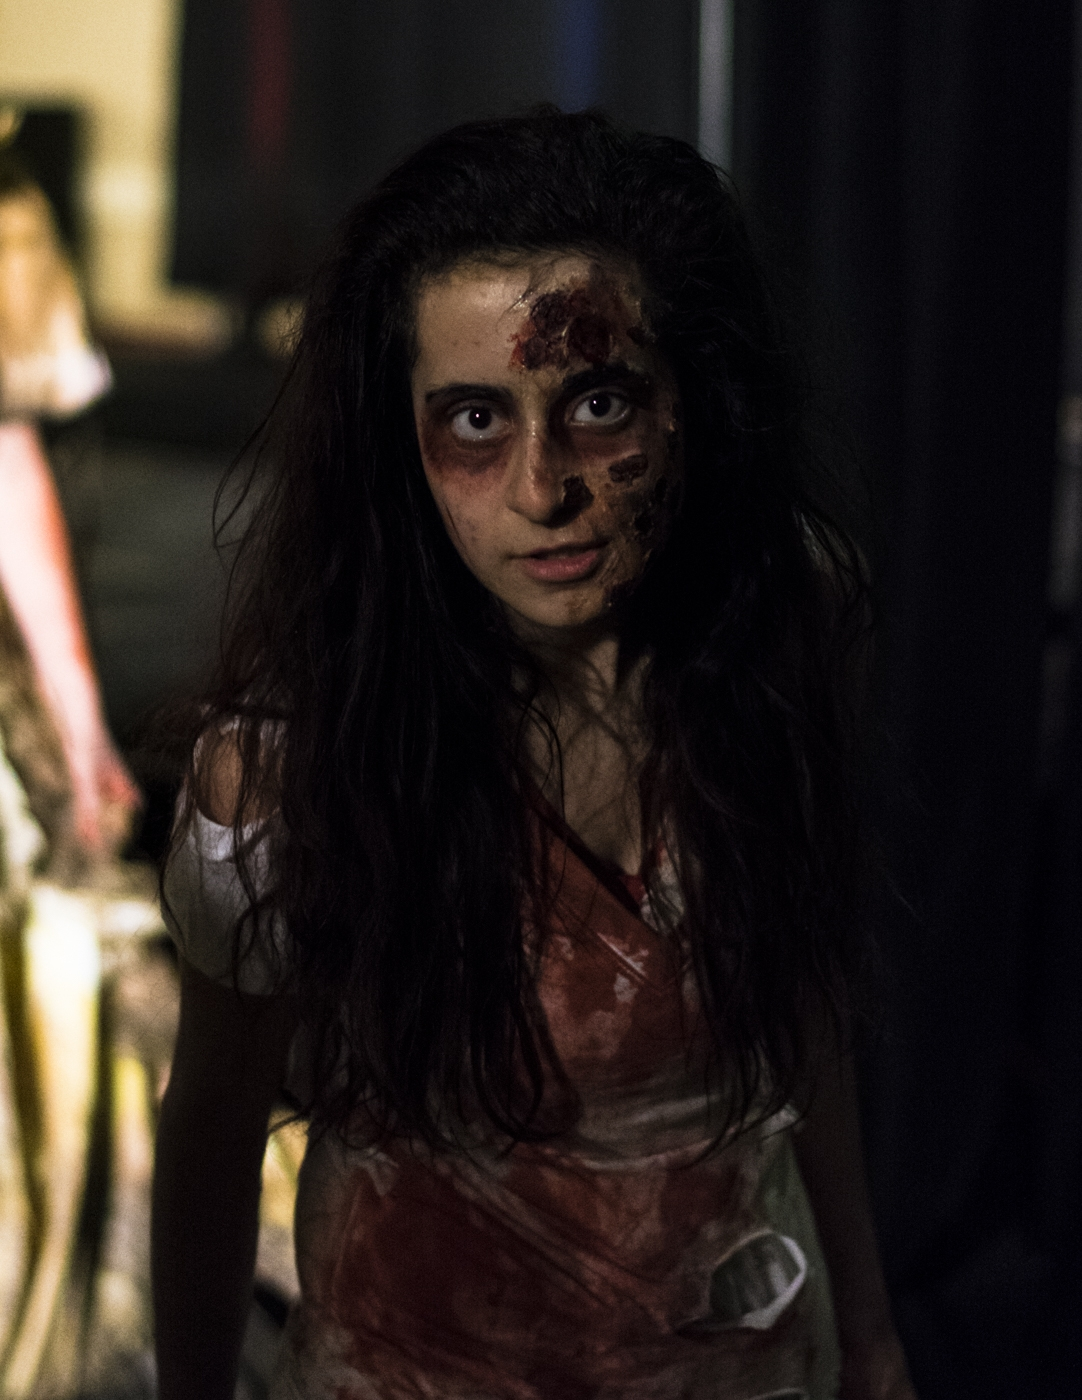 Zombie Crawl photo by: Amy Thur